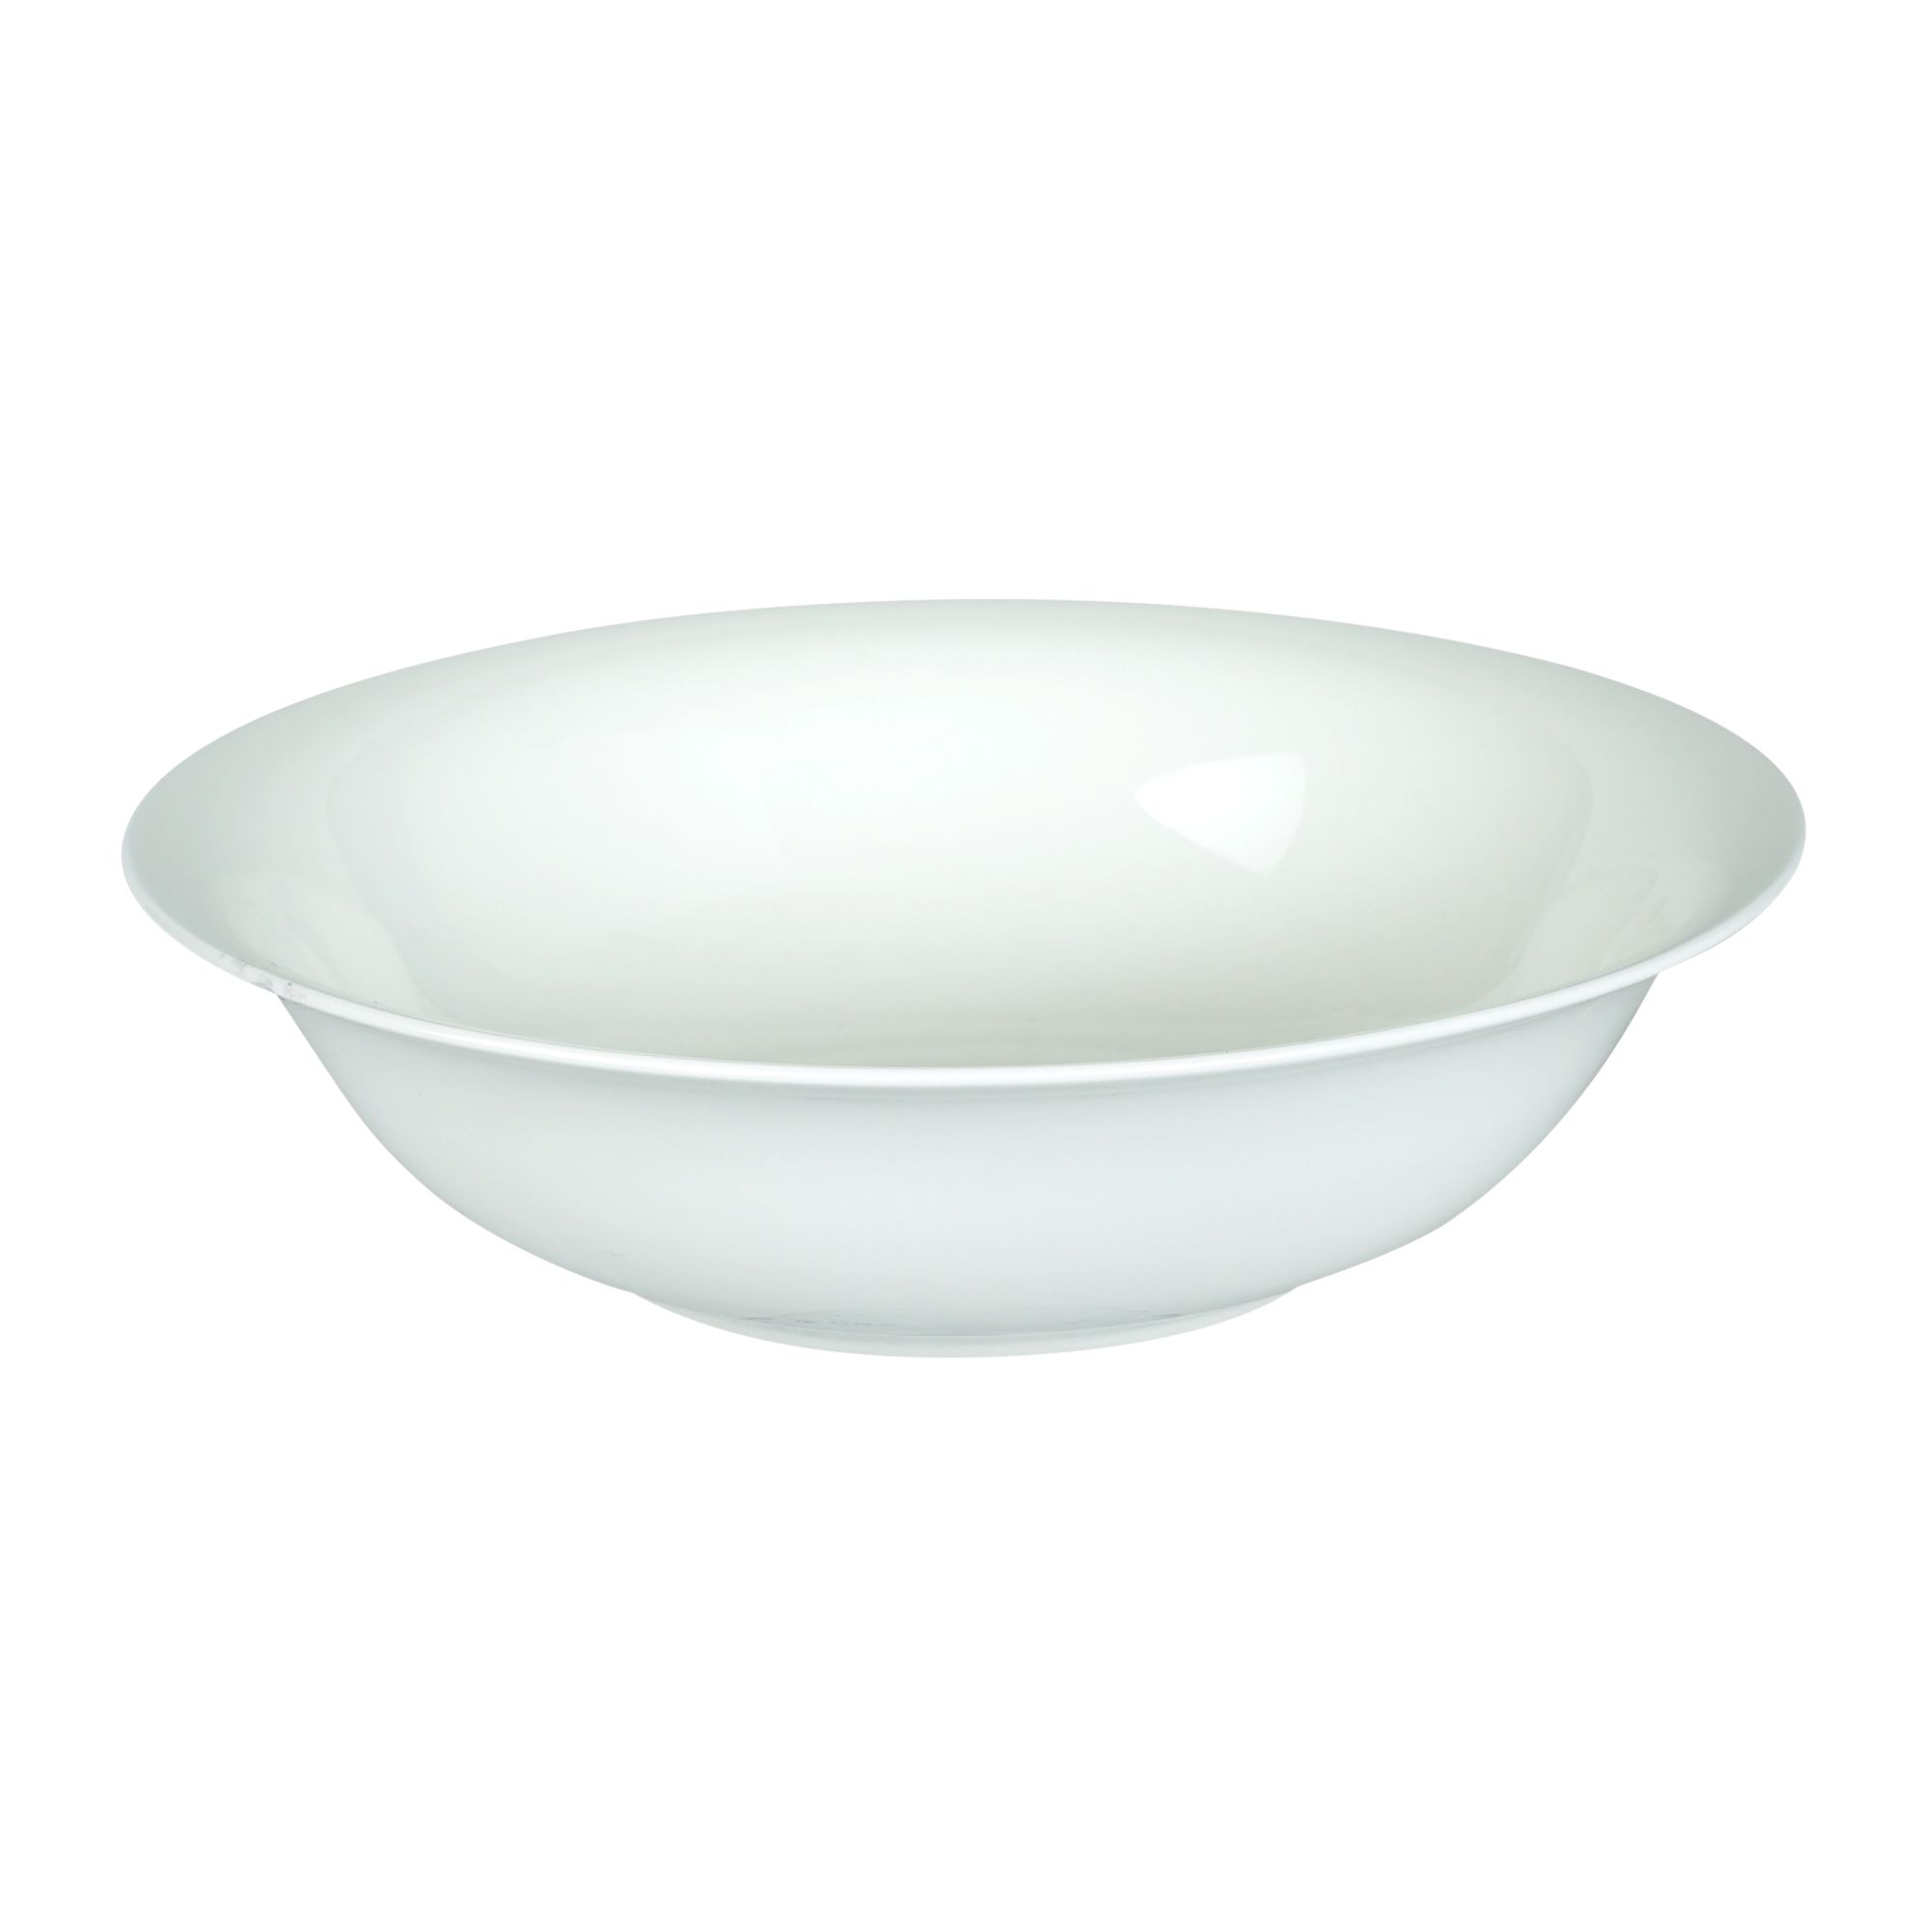 Eternal salad bowl